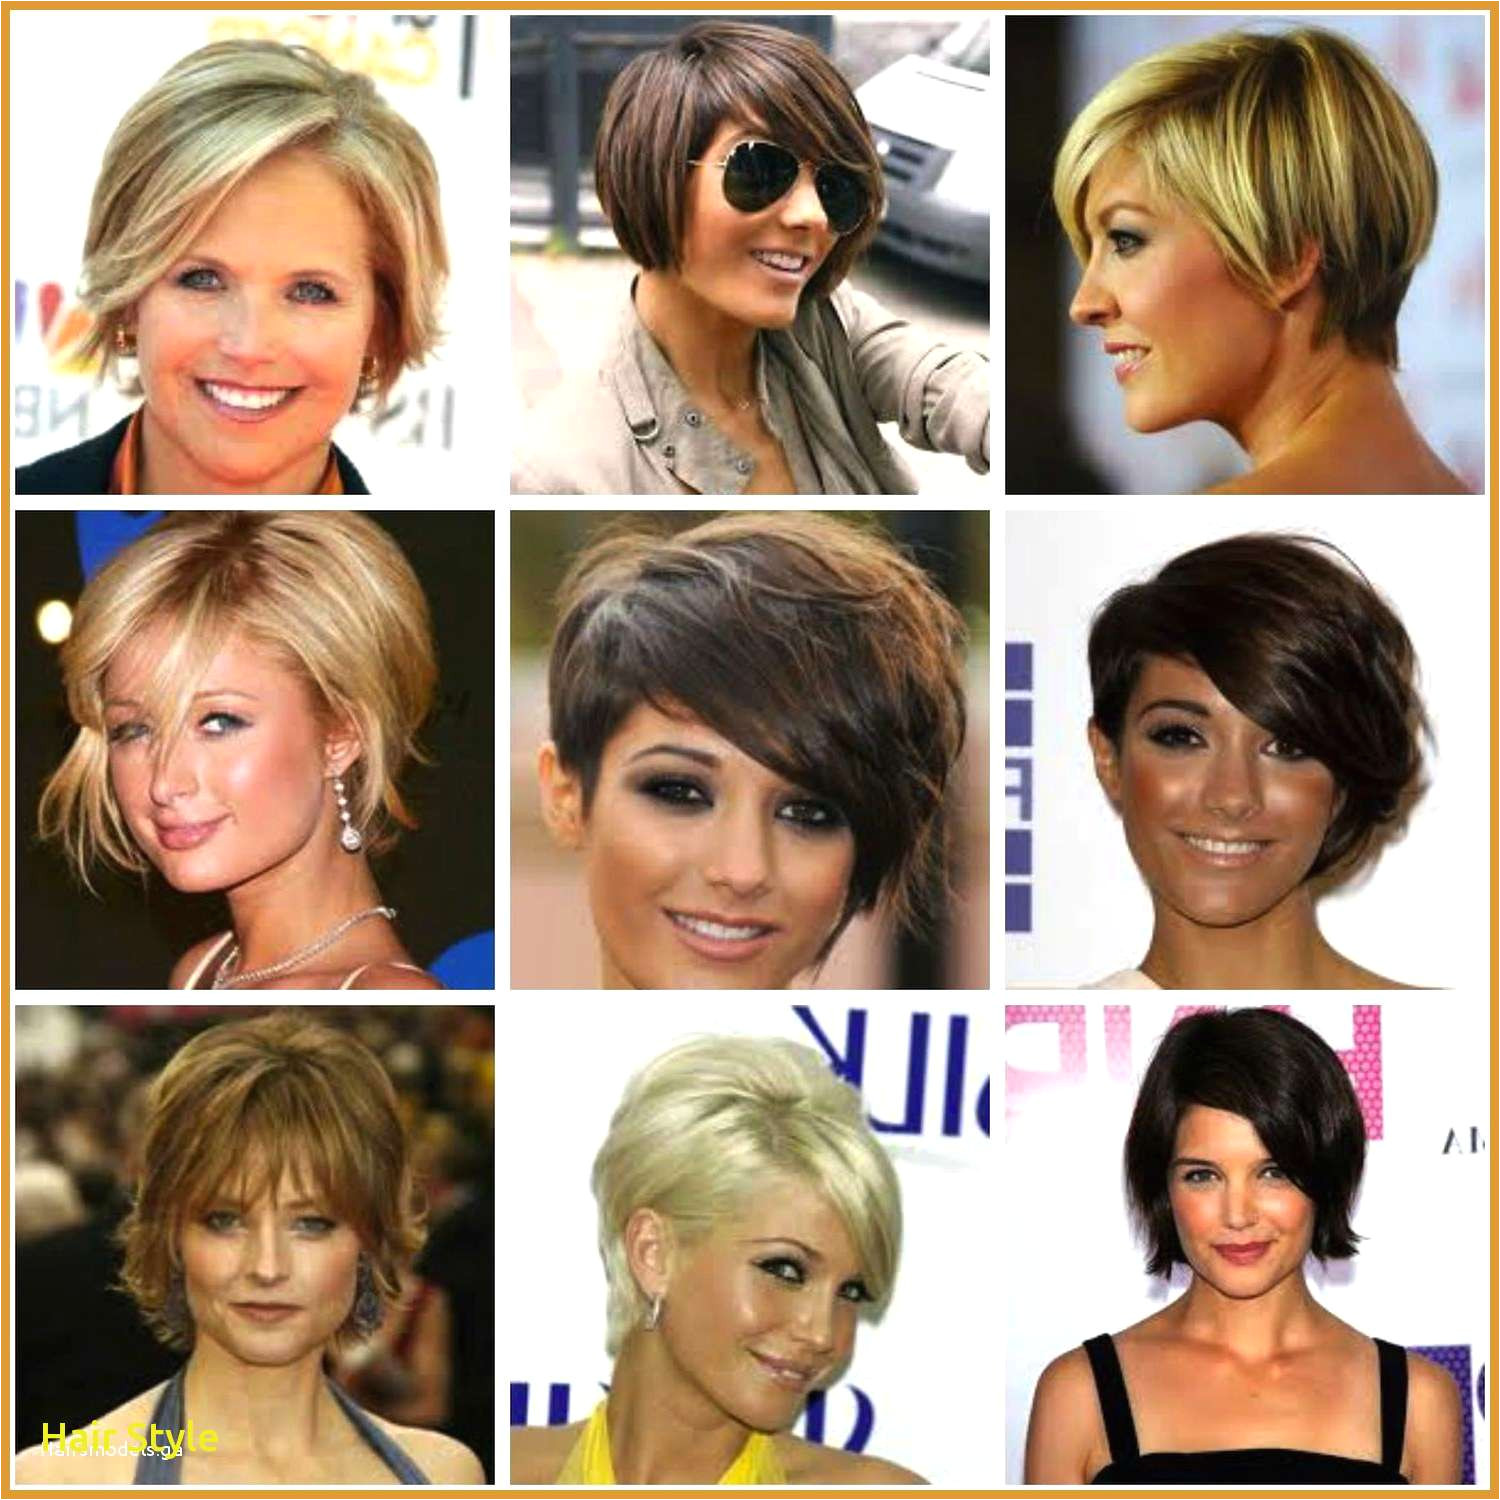 hairstyles for women inspirational new hair styles luxury i pinimg 1200x 0d 60 8a 0d608a58a4bb3ed3b a